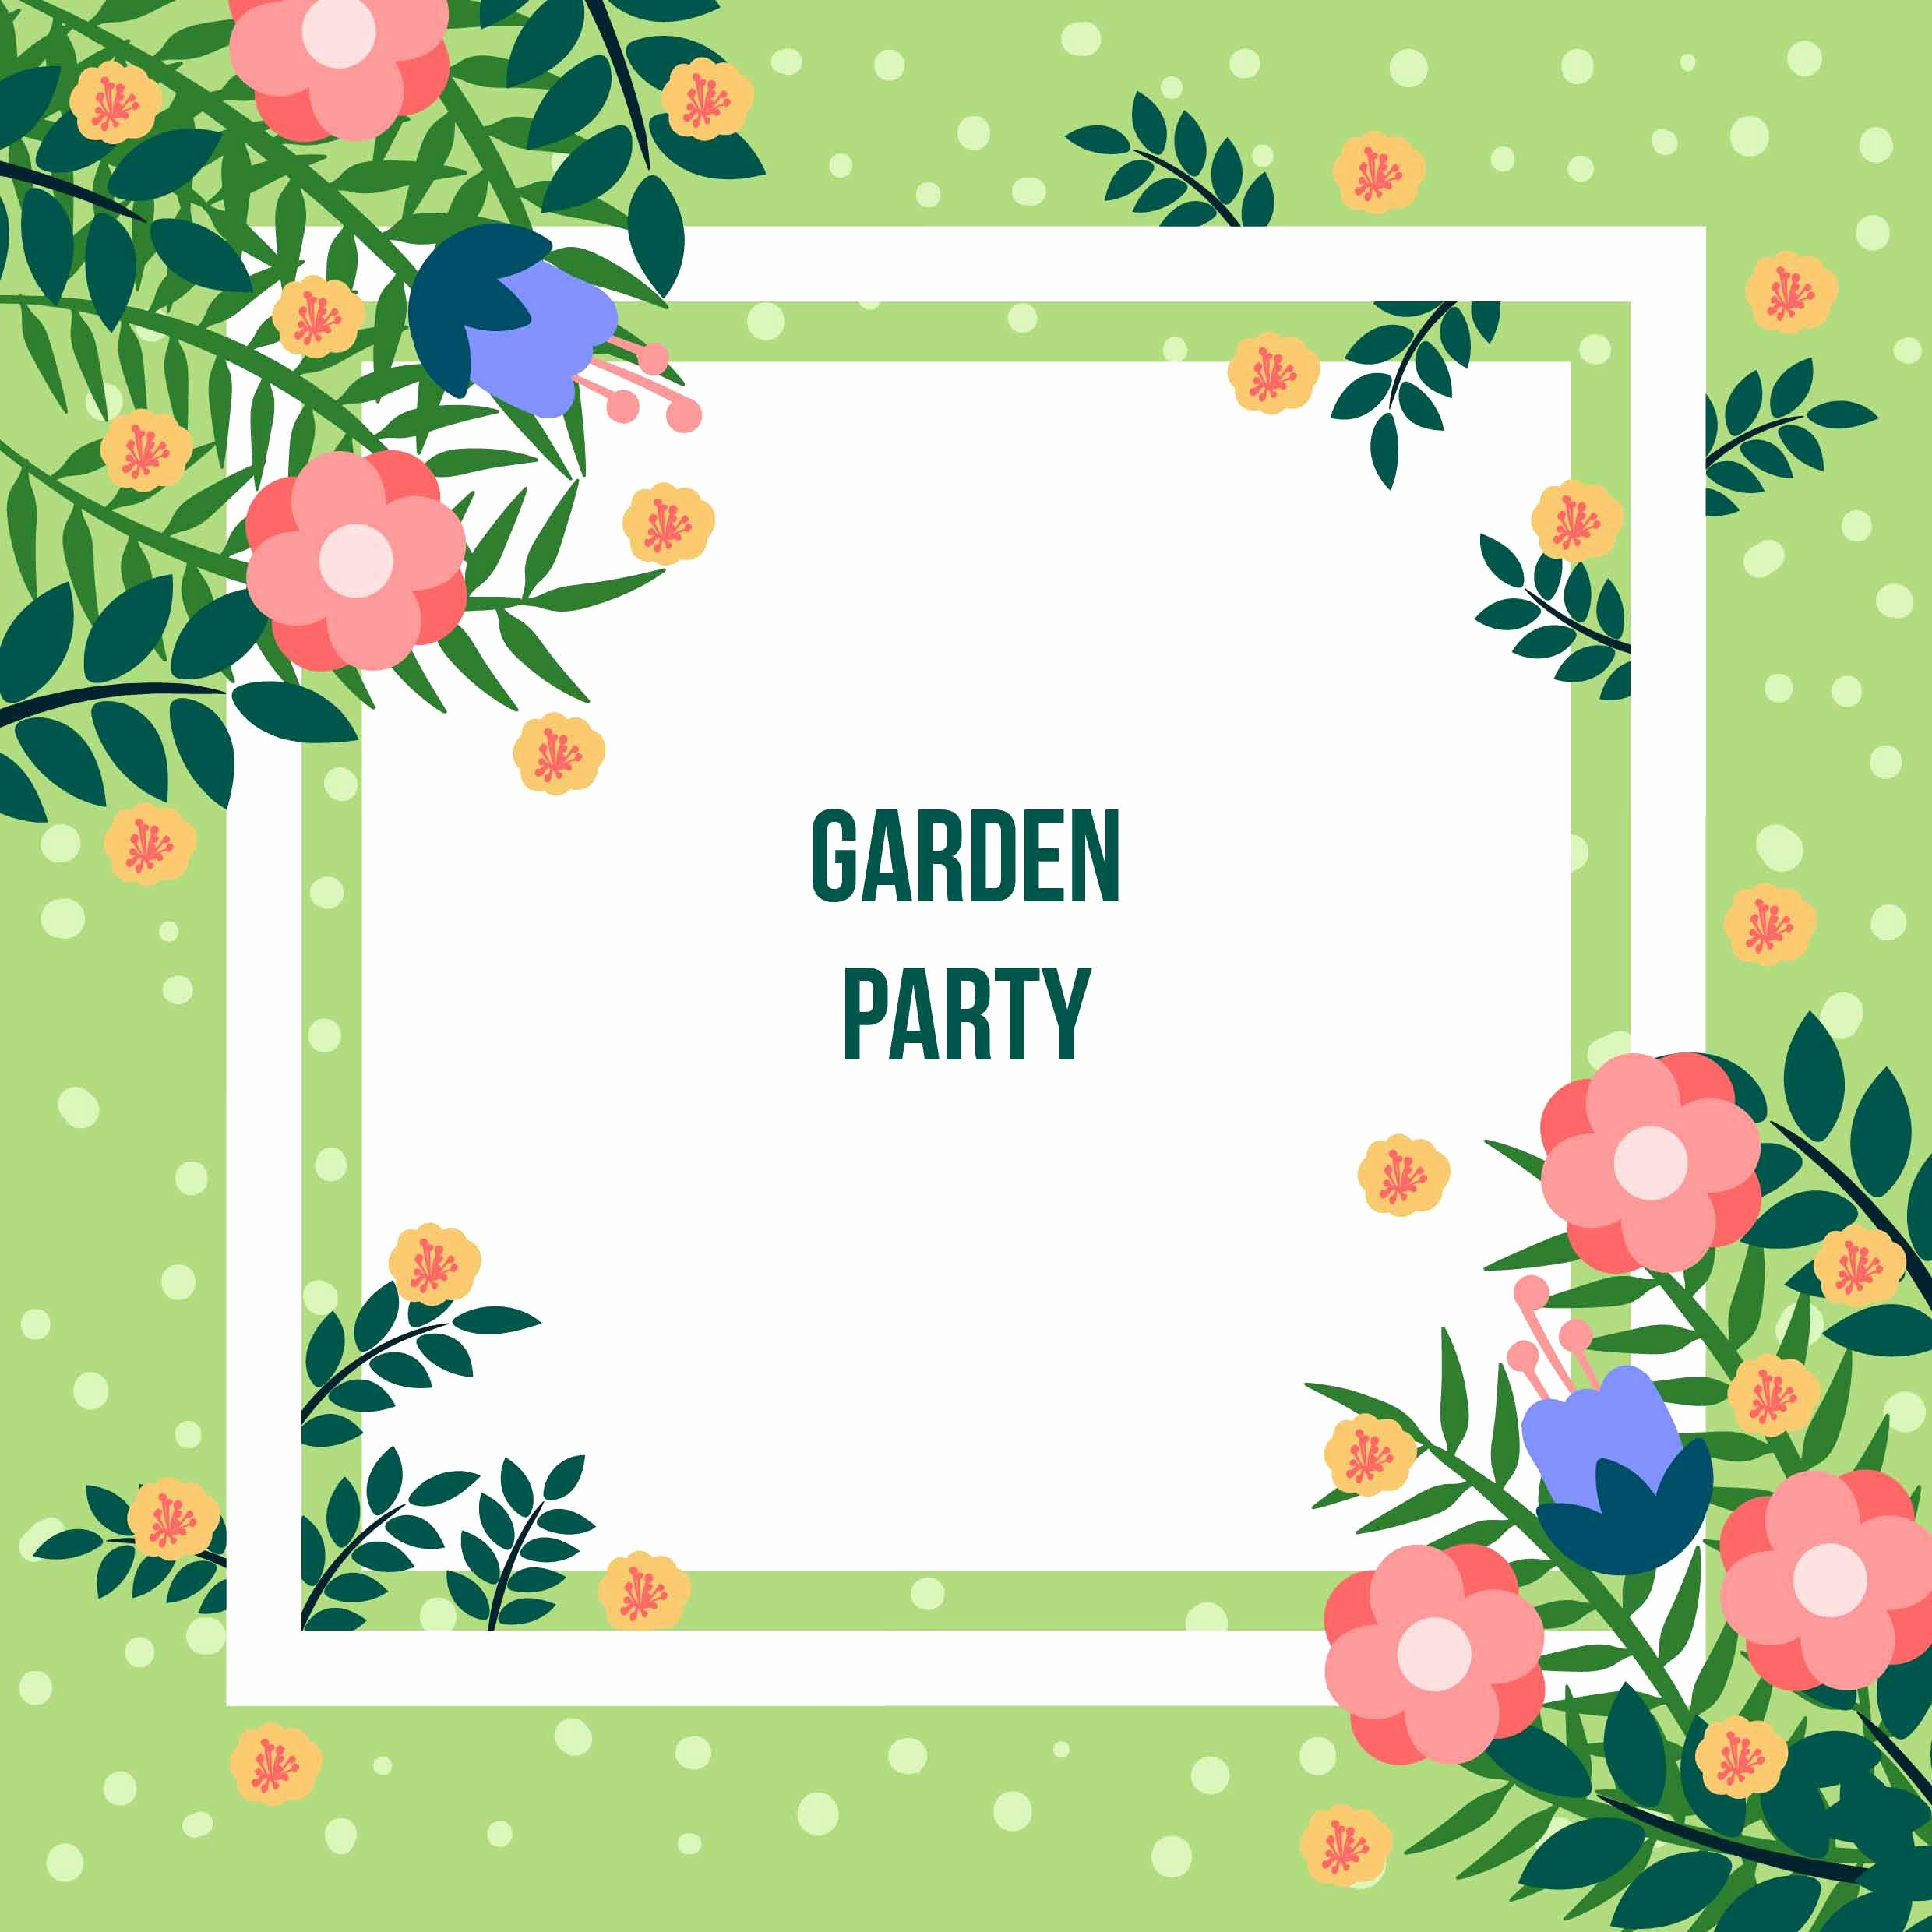 Garden Party Invite Template Lovely Garden Party Invitation Download Free Vector Art Stock